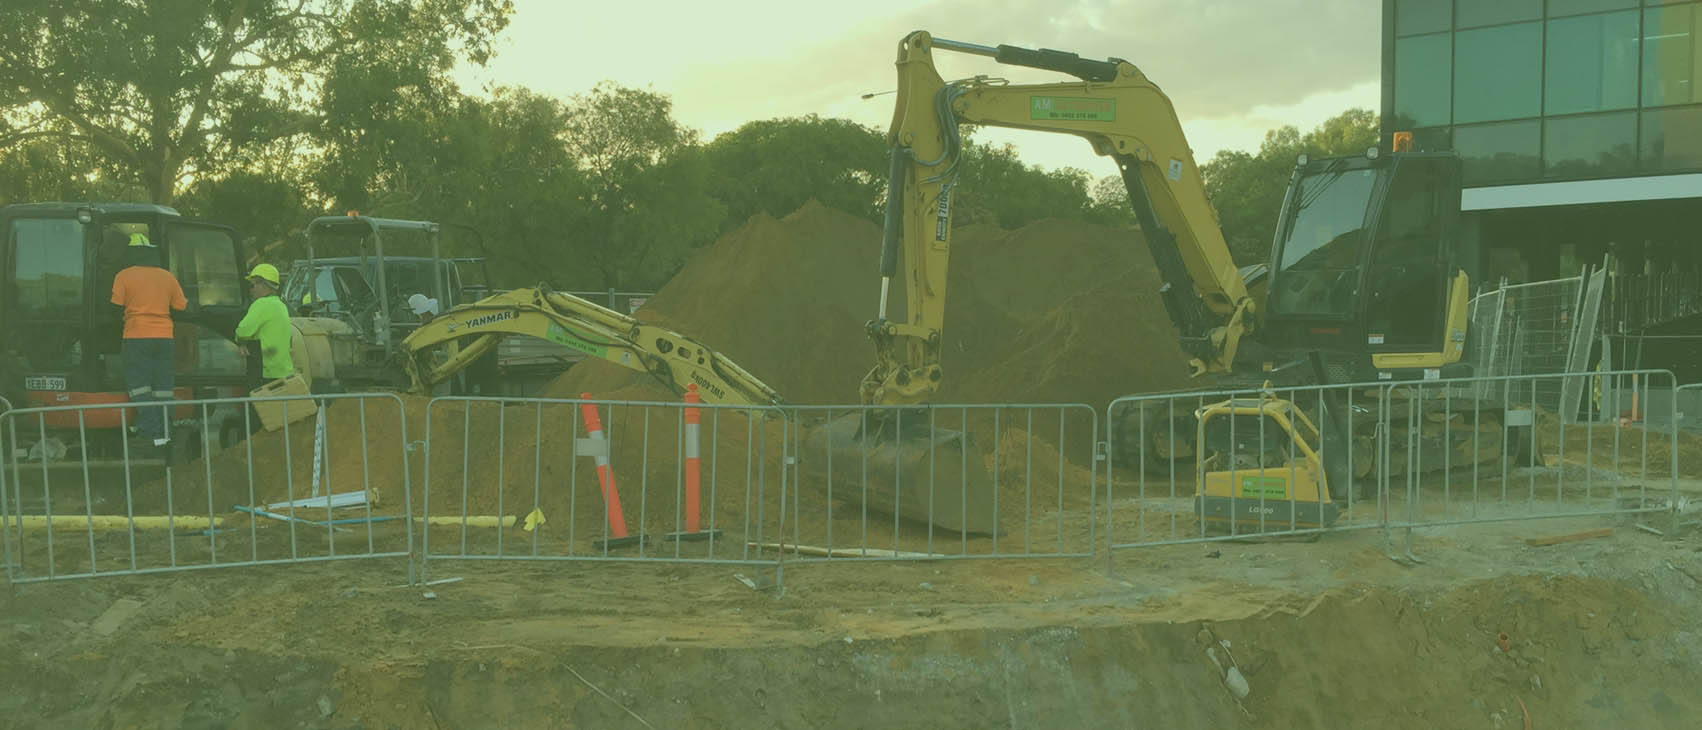 a.m. earthmoving at joondalup health campus